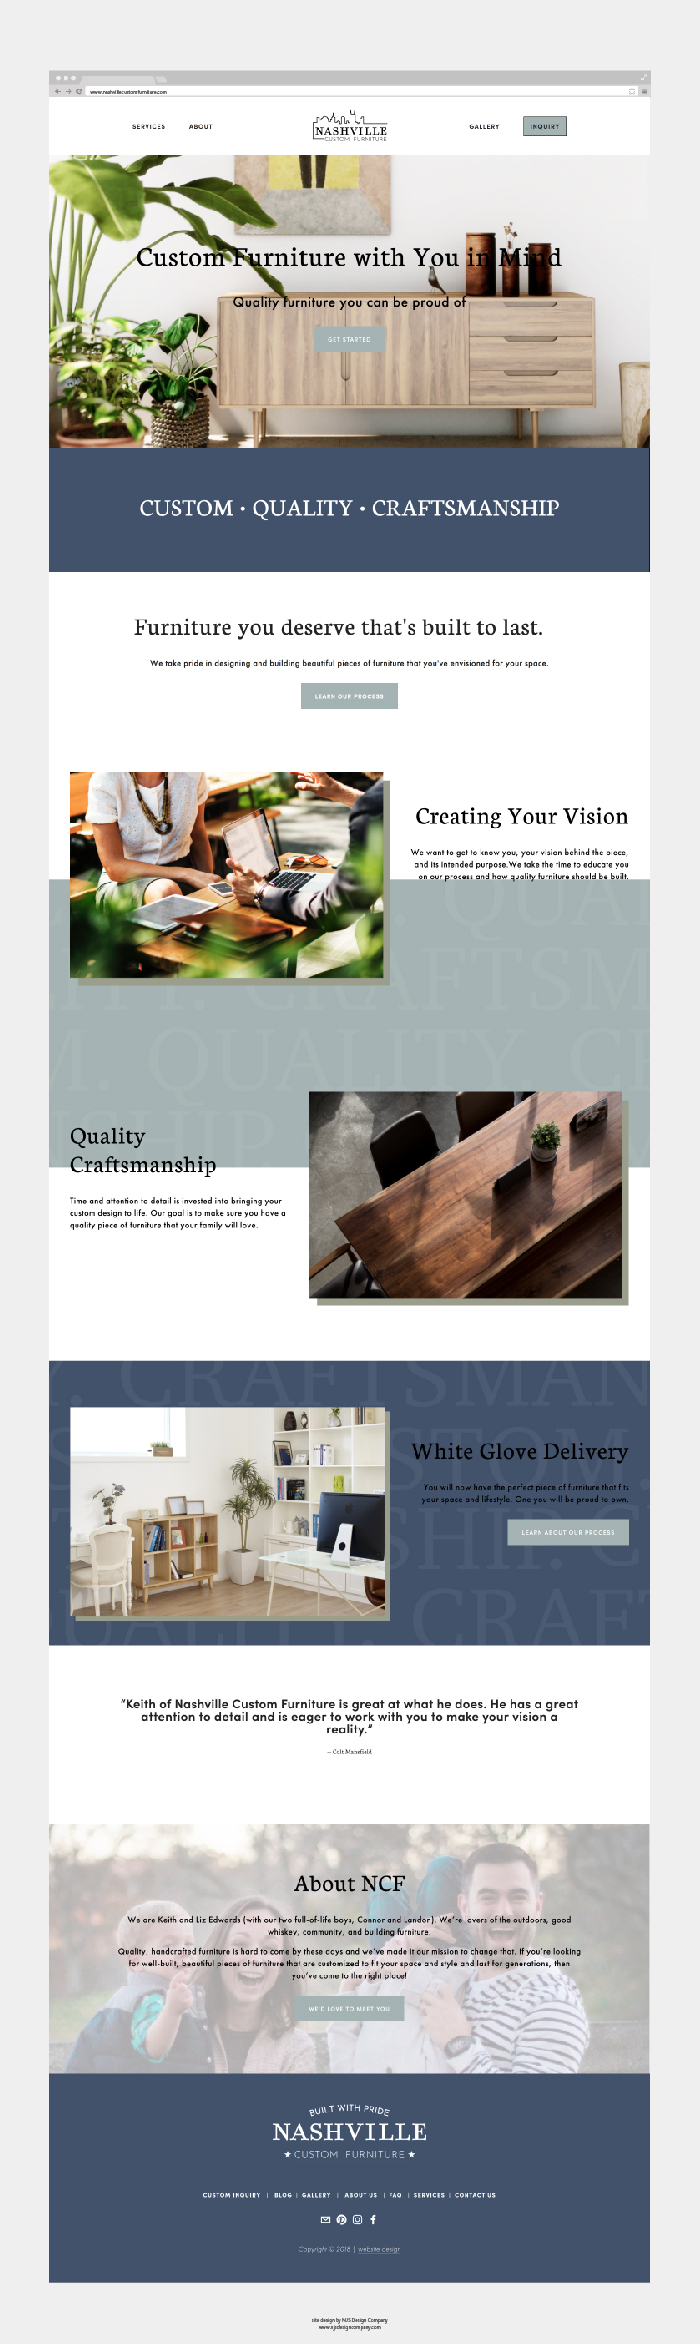 NCF_Full Site Mockup squarespace website designer for makers woodworkers and small businesses.png